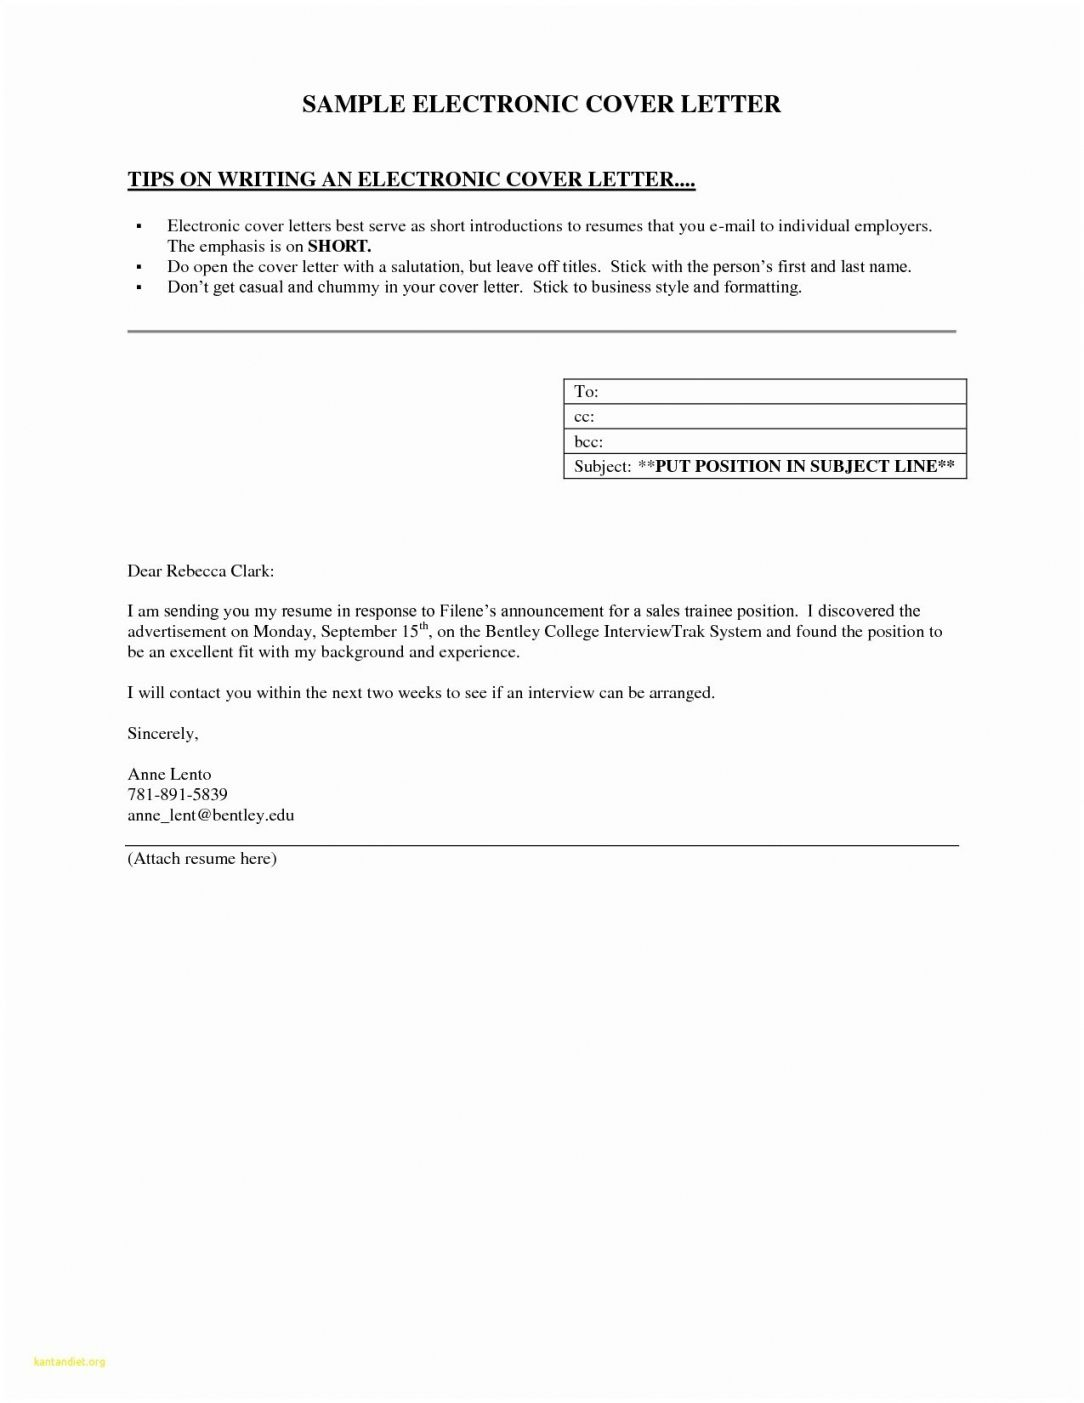 Cover Letter For Email Resume 25 Email Cover Letter Email Cover Letter Email Letter Format